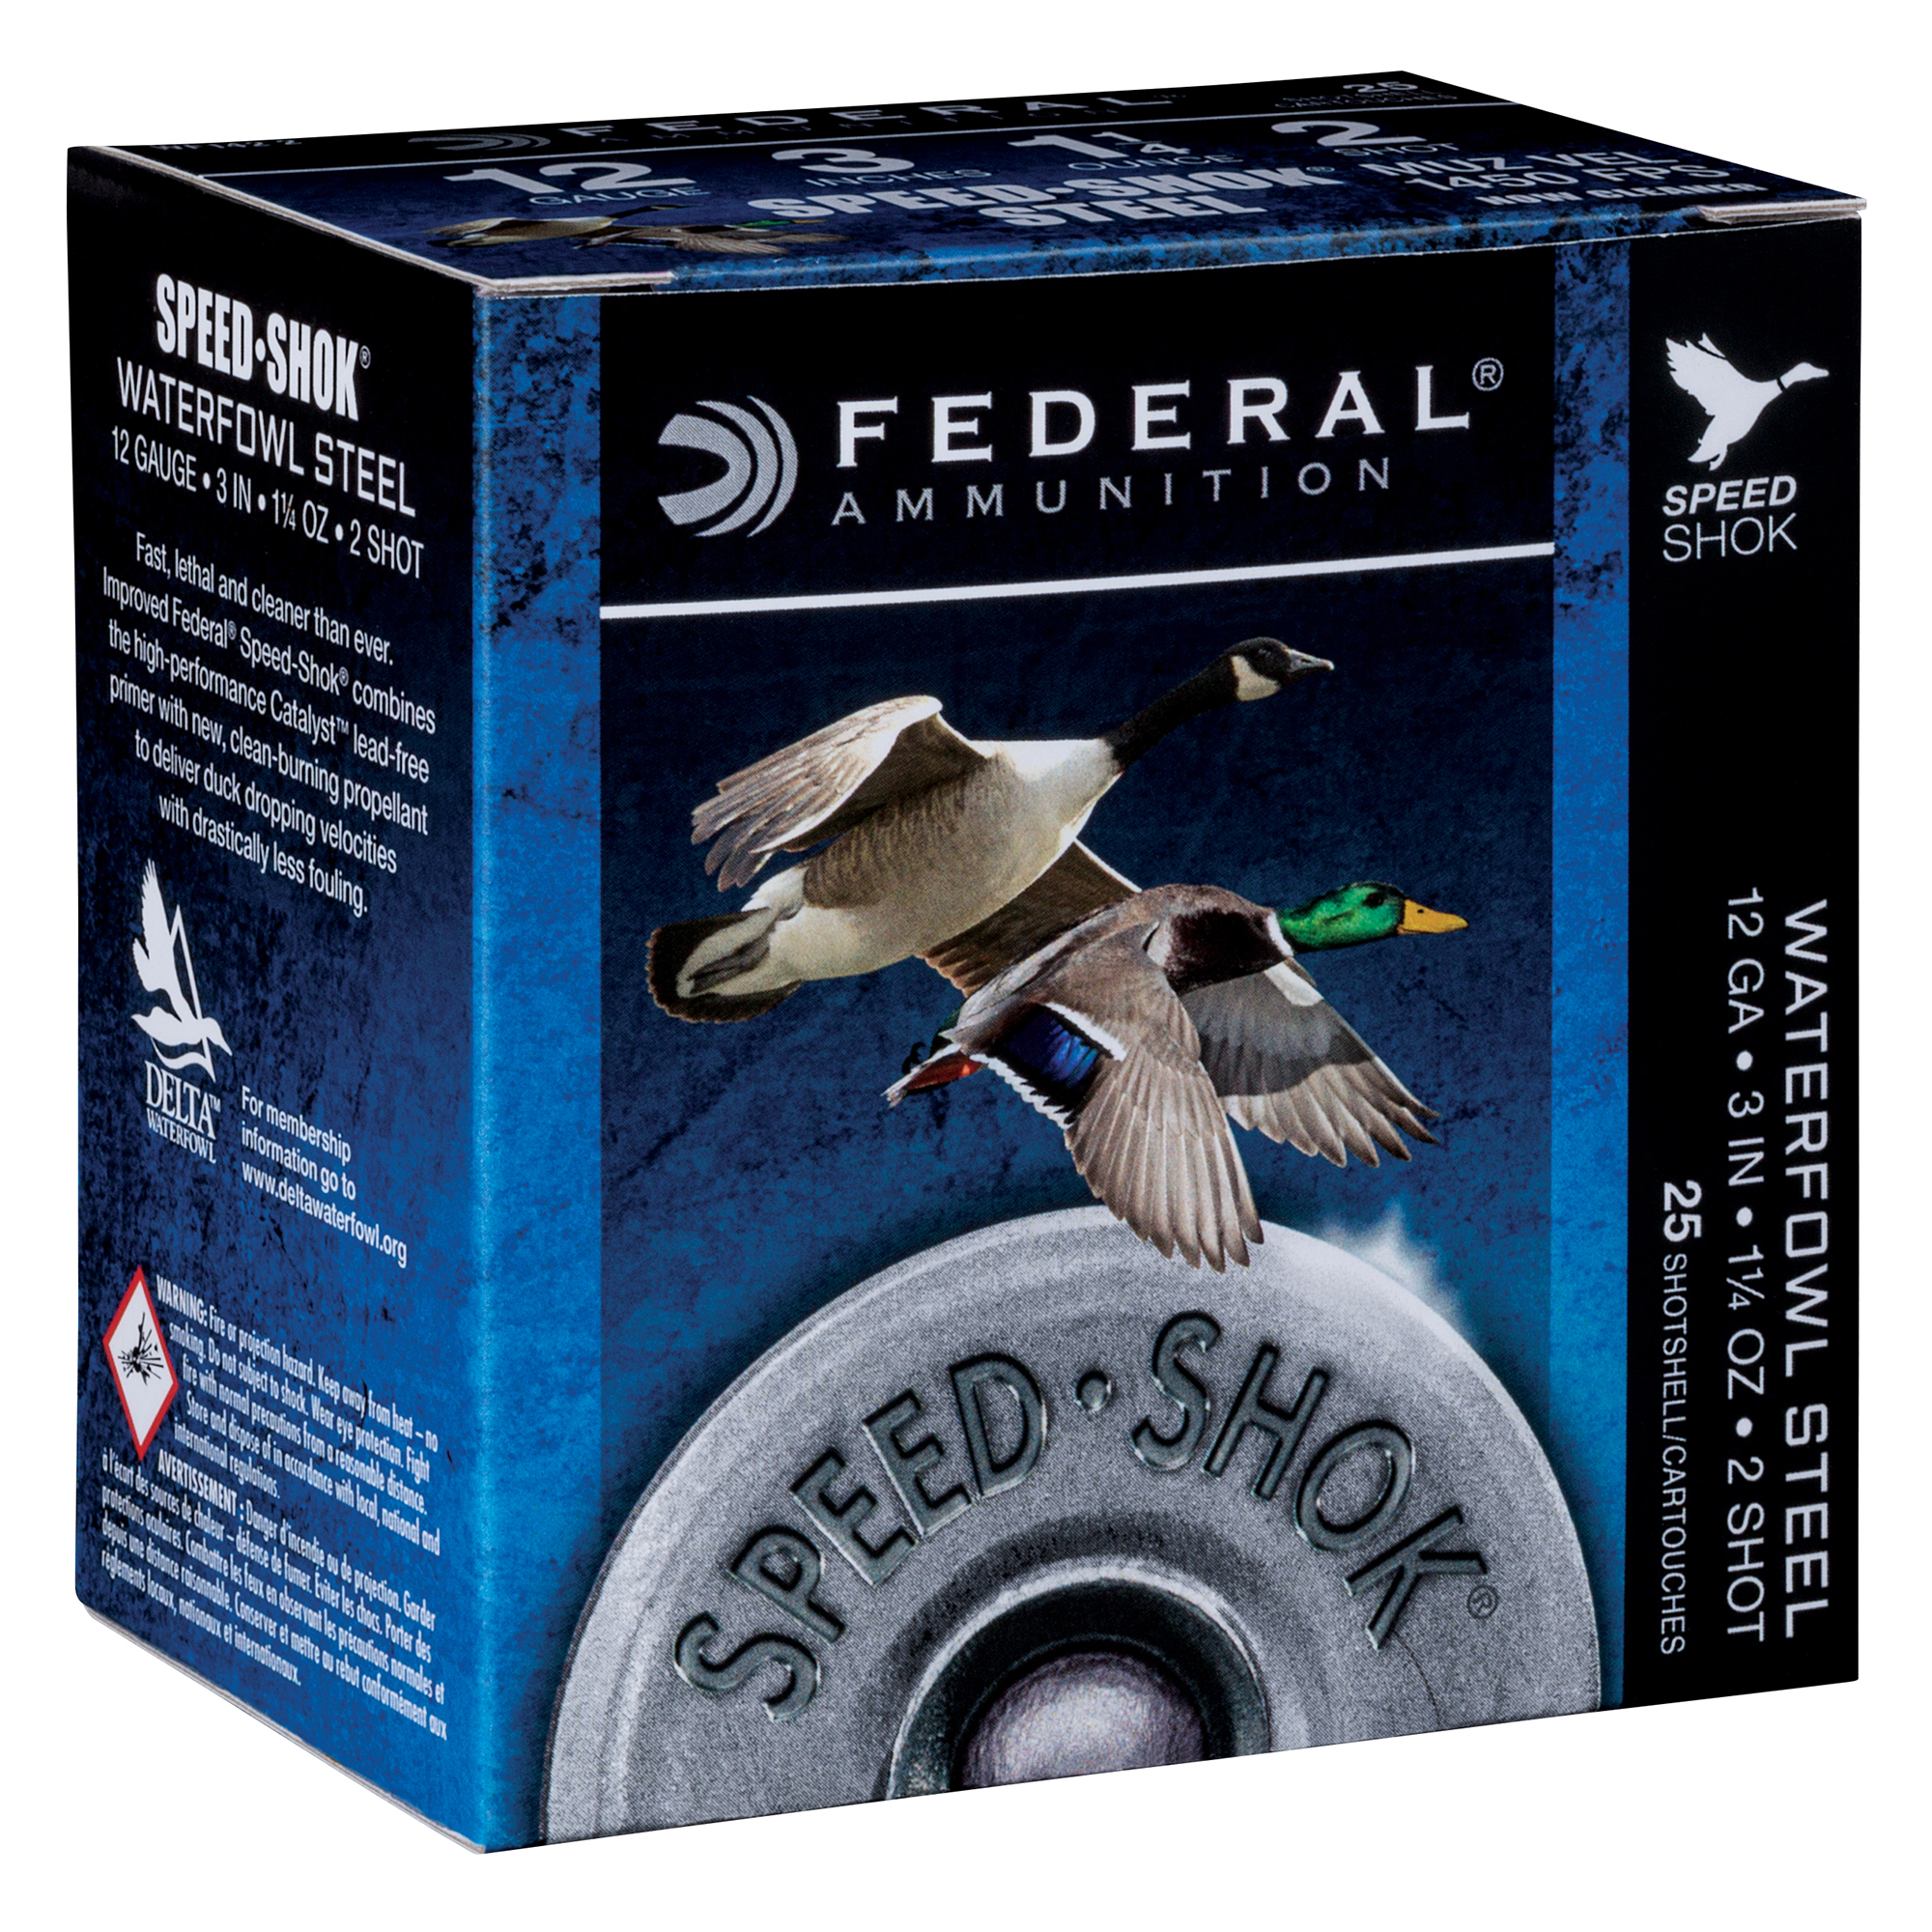 Federal Premium Speed-Shok Steel Waterfowl Loads, 12-ga, 2-3/4″, 1-1/8 oz, 4